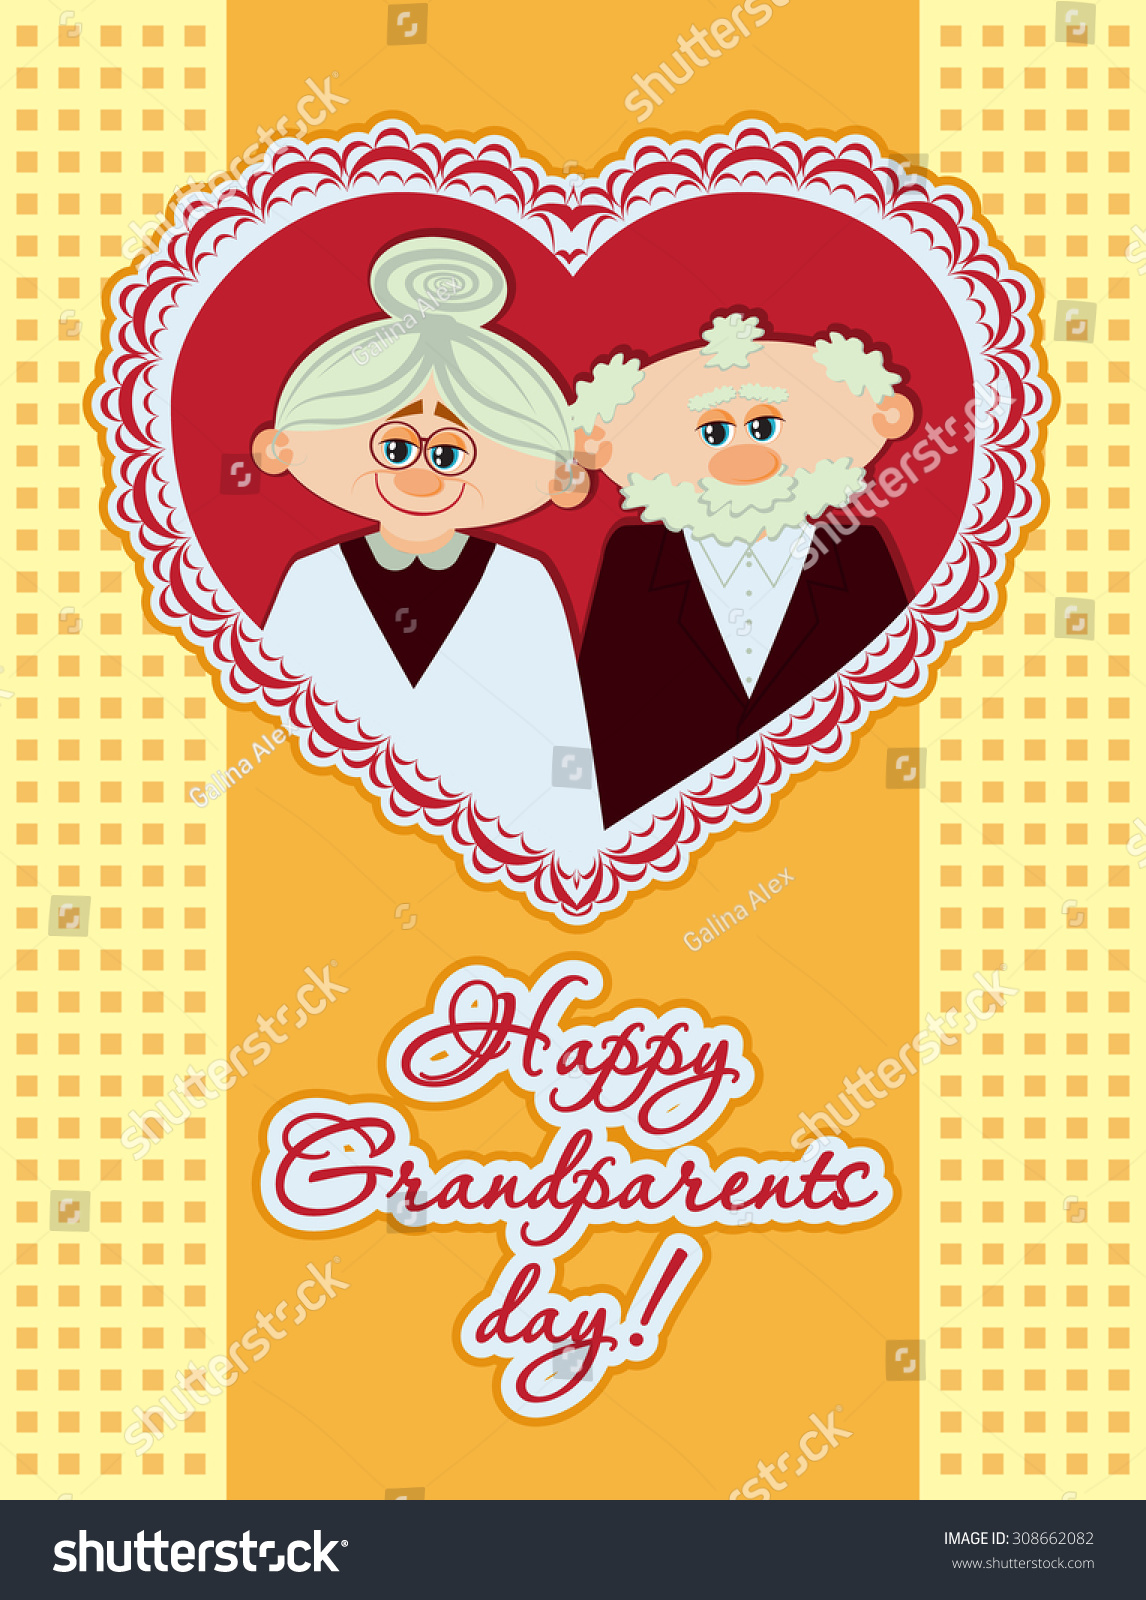 Happy grandparents day ideal for postcards greeting cards poster id 308662082 m4hsunfo